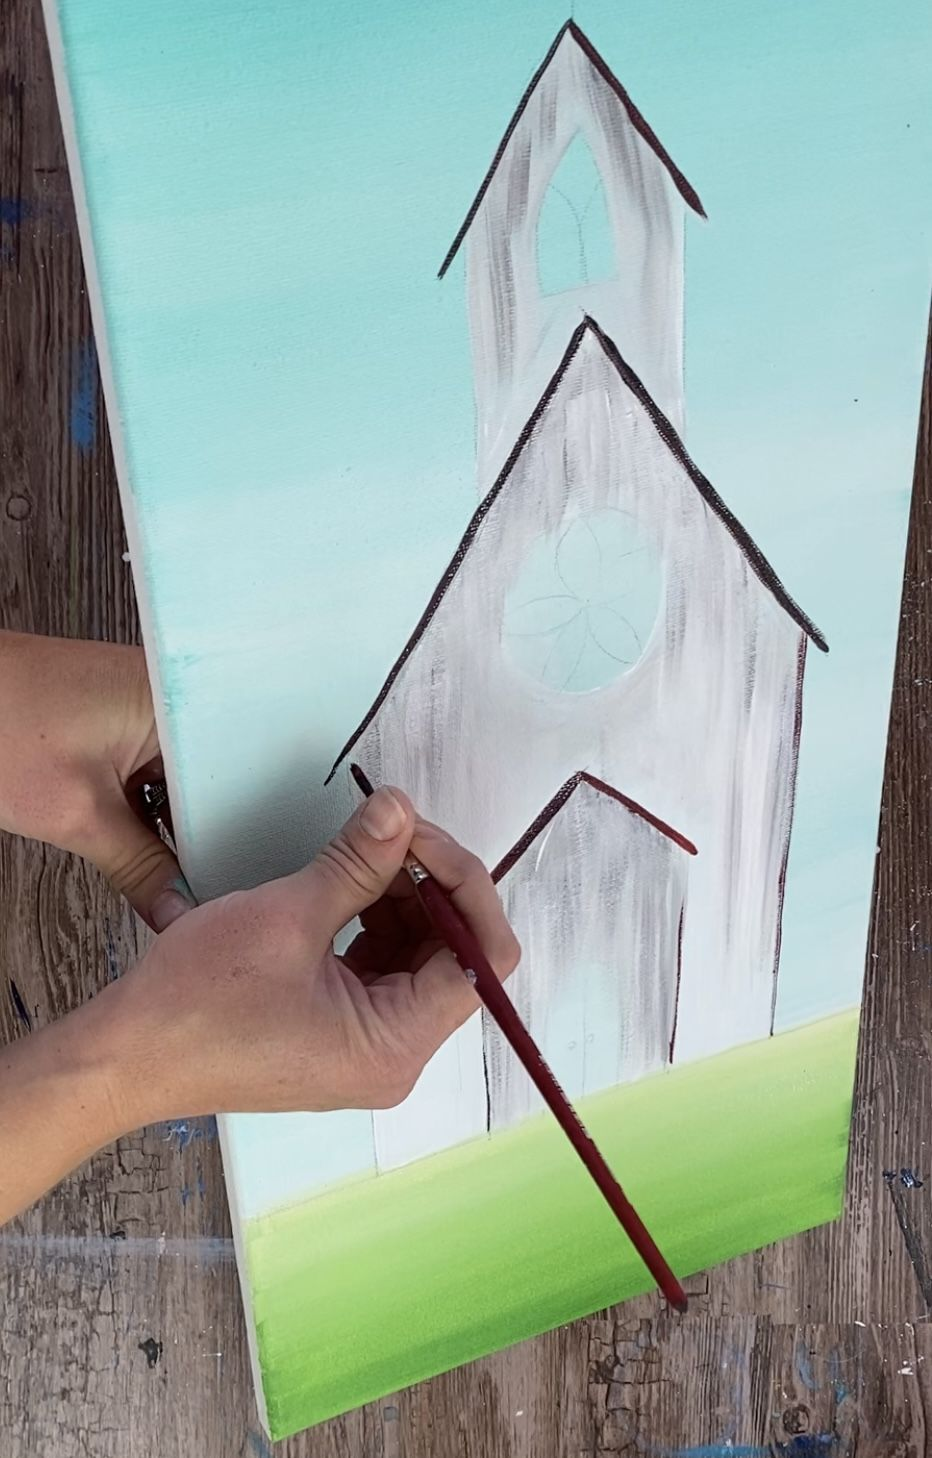 No Frame 20 x 16 DIY Canvas Painting for Adults /& Kids FAVOREADS Paint by Numbers Kit: Puppy Welcomes You Home Pre-Printed Canvas 3 Brushes /& Acrylic Paints in a Gift Package